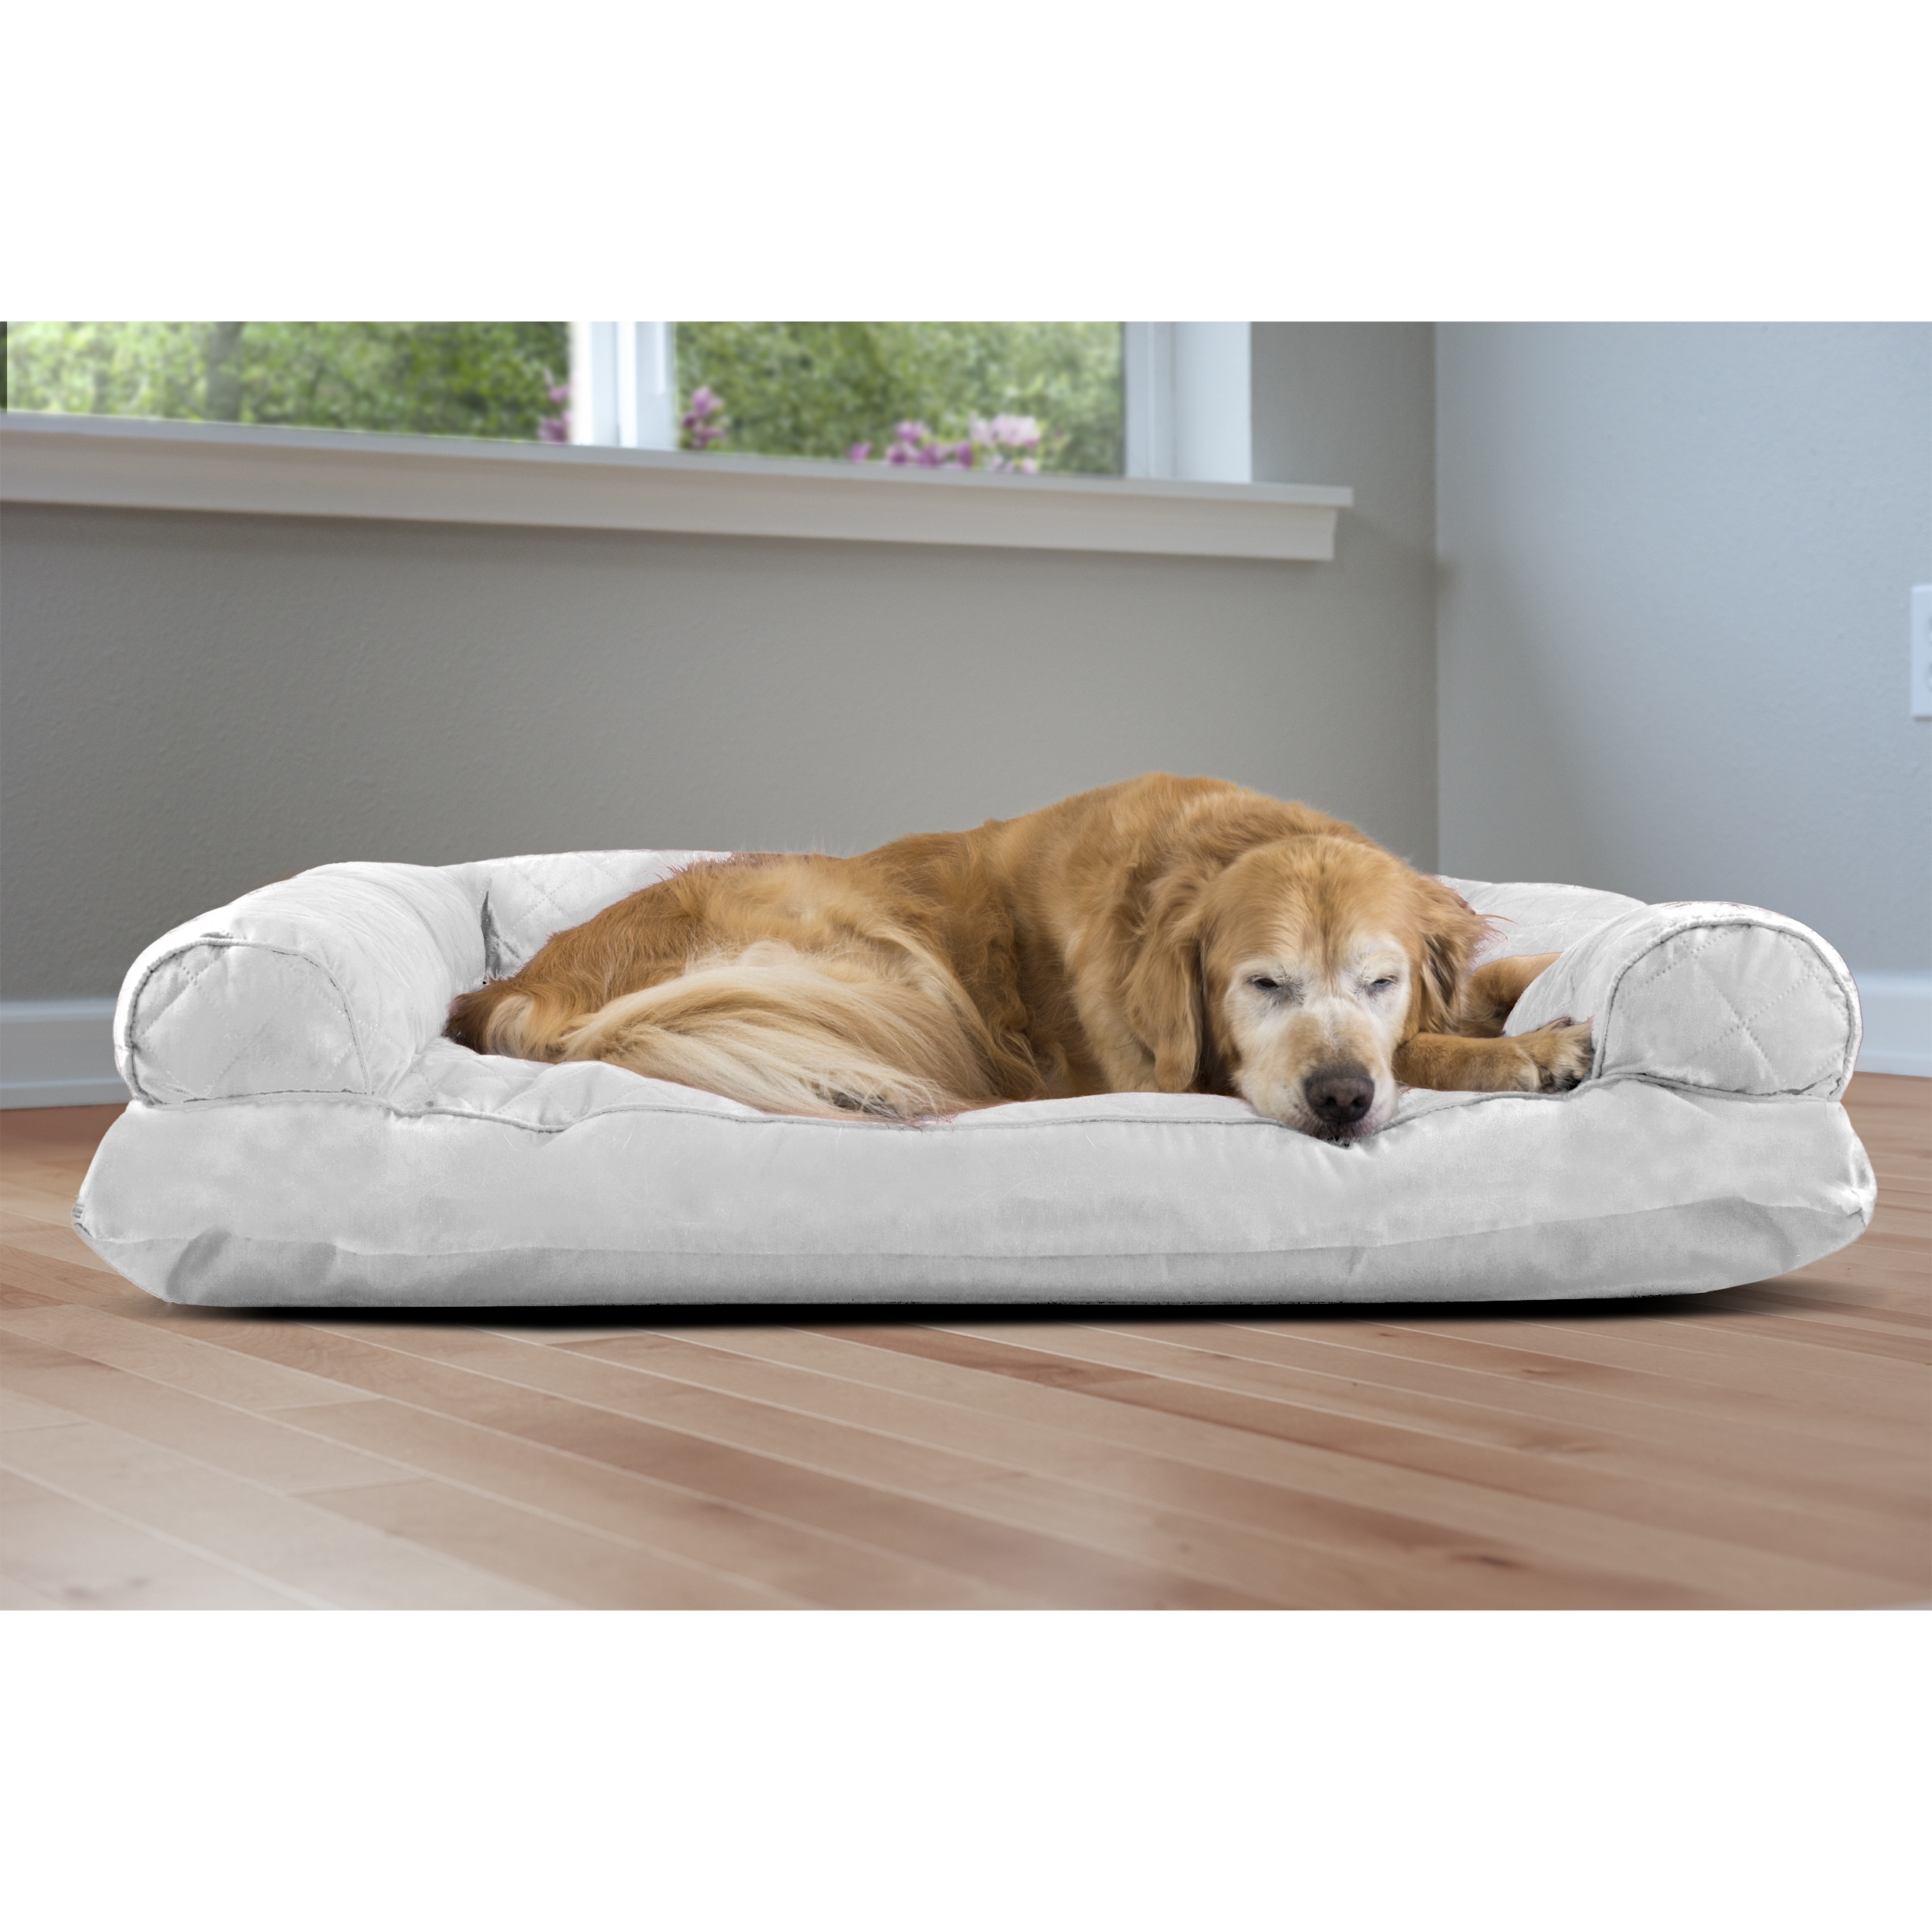 panache dog sofa microfiber cleaning products pet bed beds you ll love wayfair thesofa